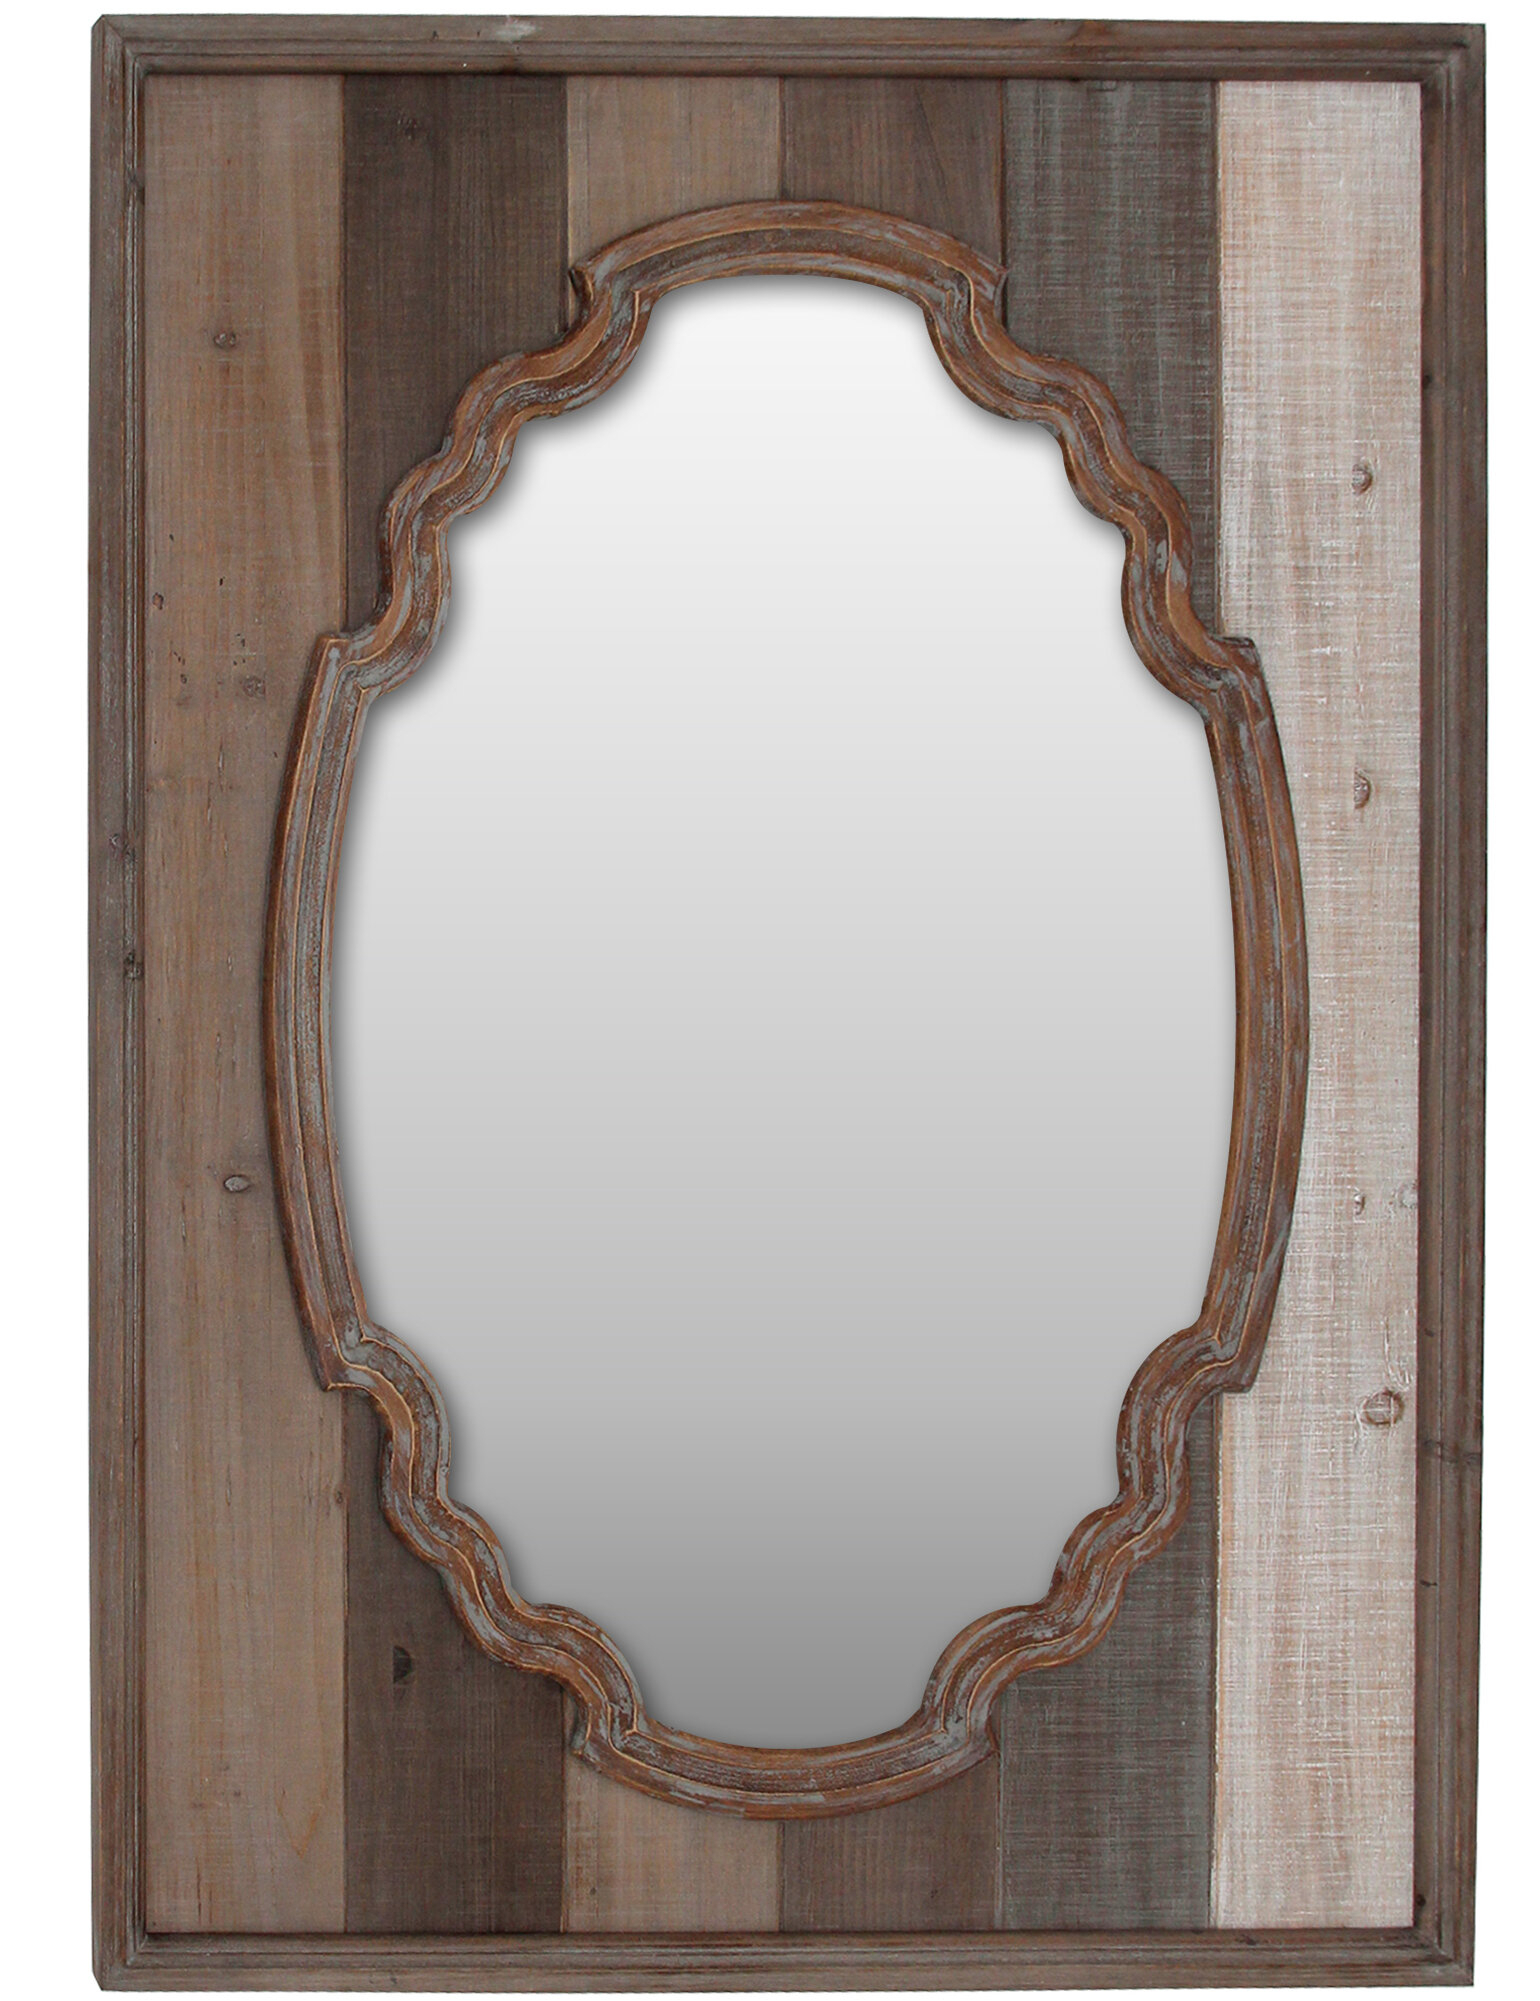 Jaylyn Elegant Farmstead Rustic Accent Mirror Intended For Menachem Modern & Contemporary Accent Mirrors (Image 12 of 30)